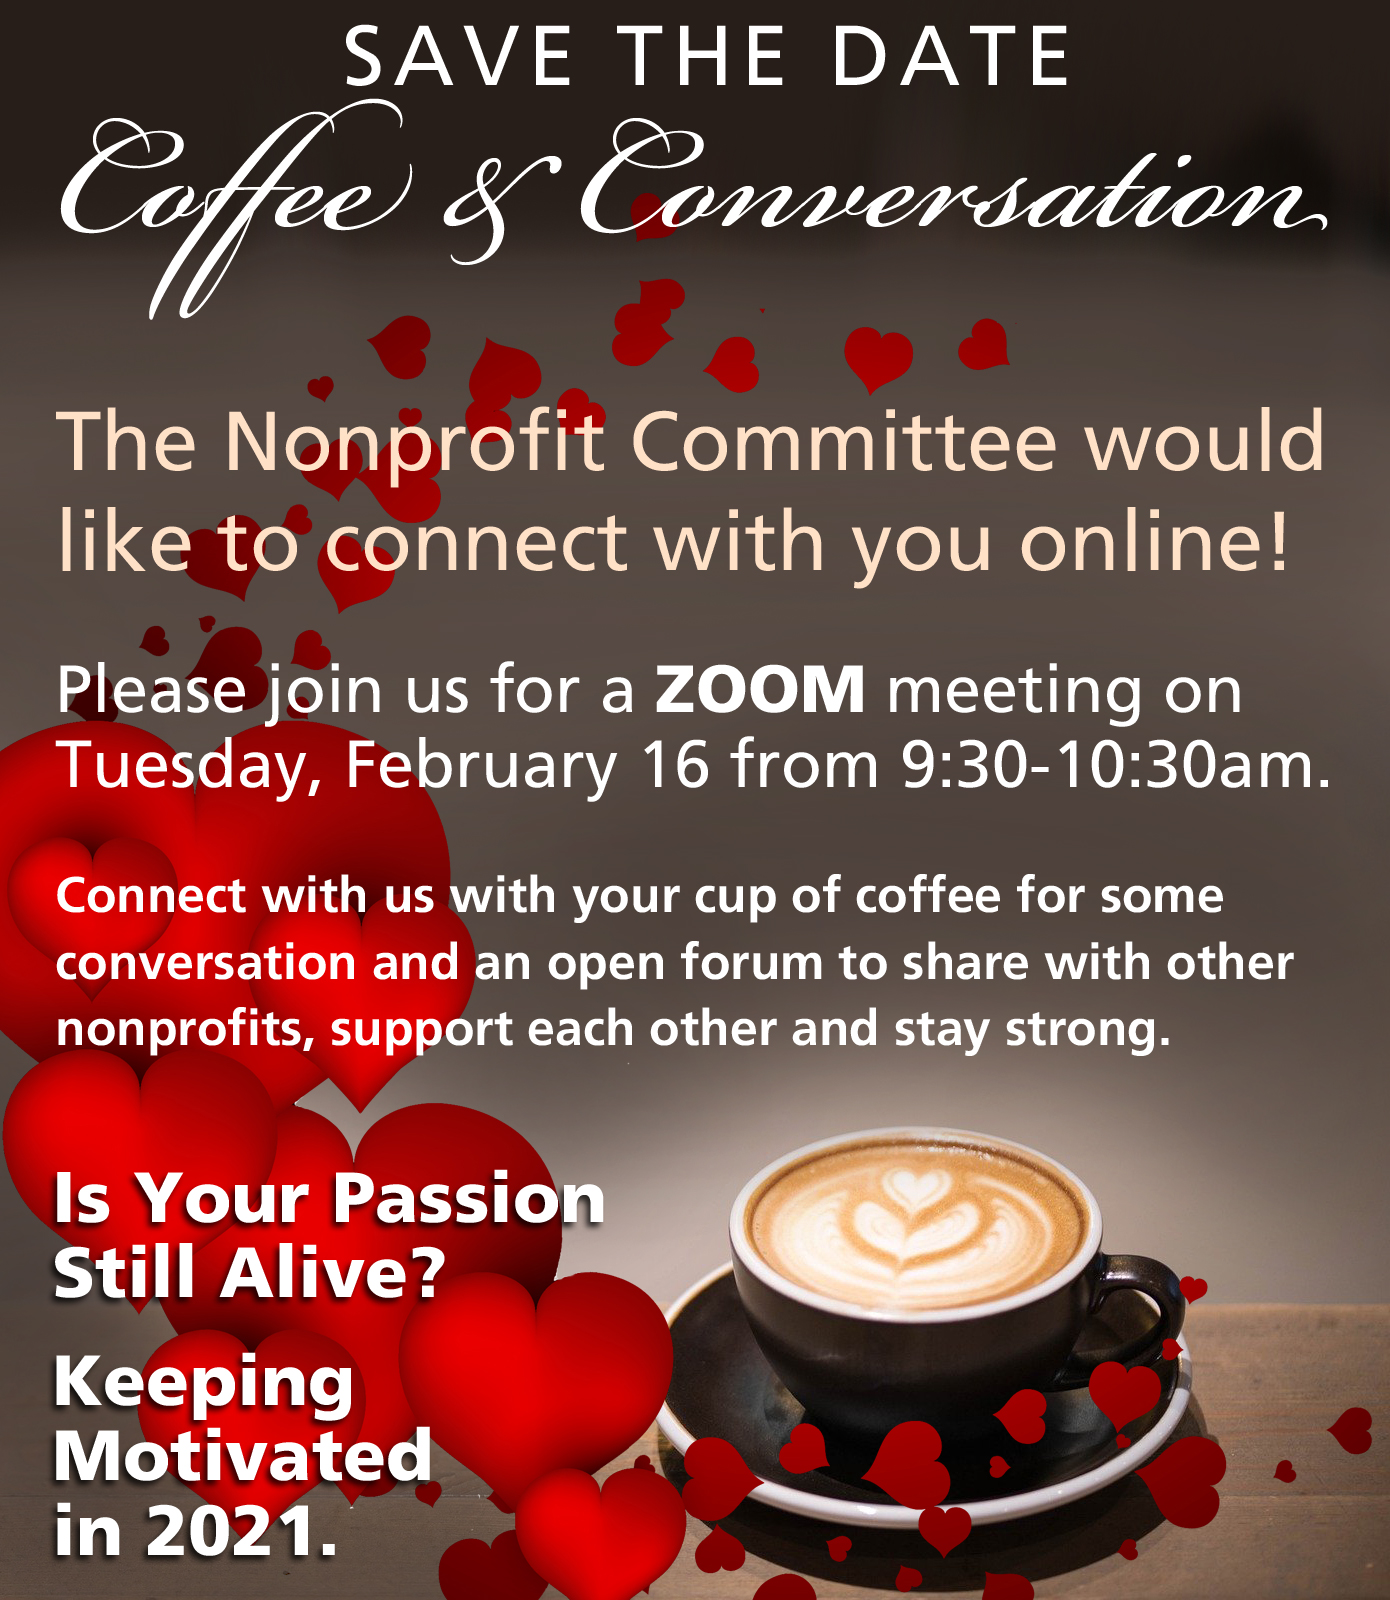 Coffee & Conversation: Is Your Passion Still Alive? Keeping Motivated in 2021.